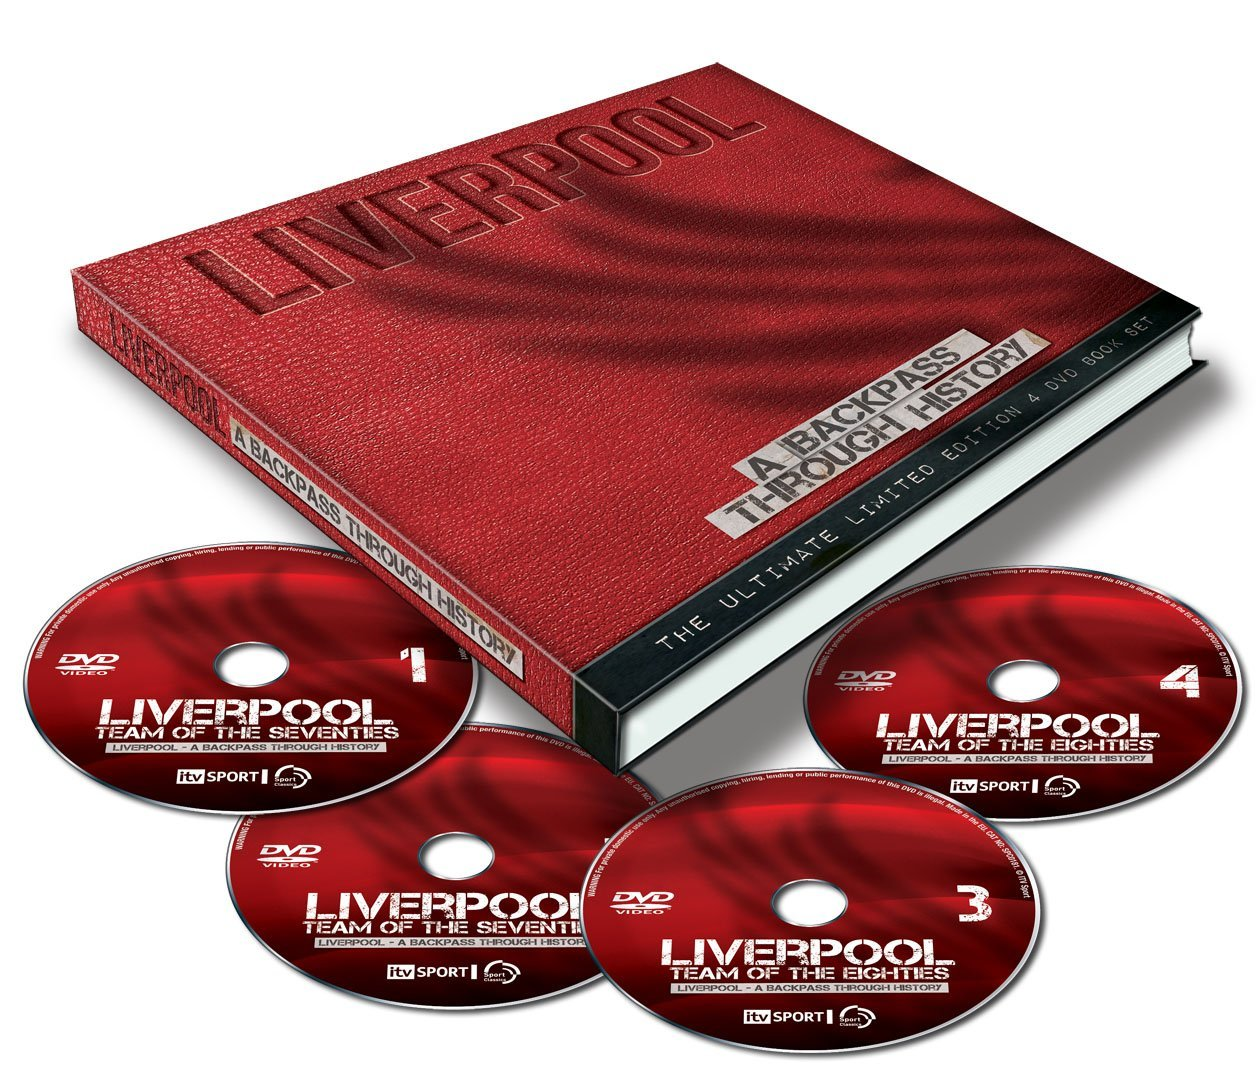 Liverpool - A Backpass Through History